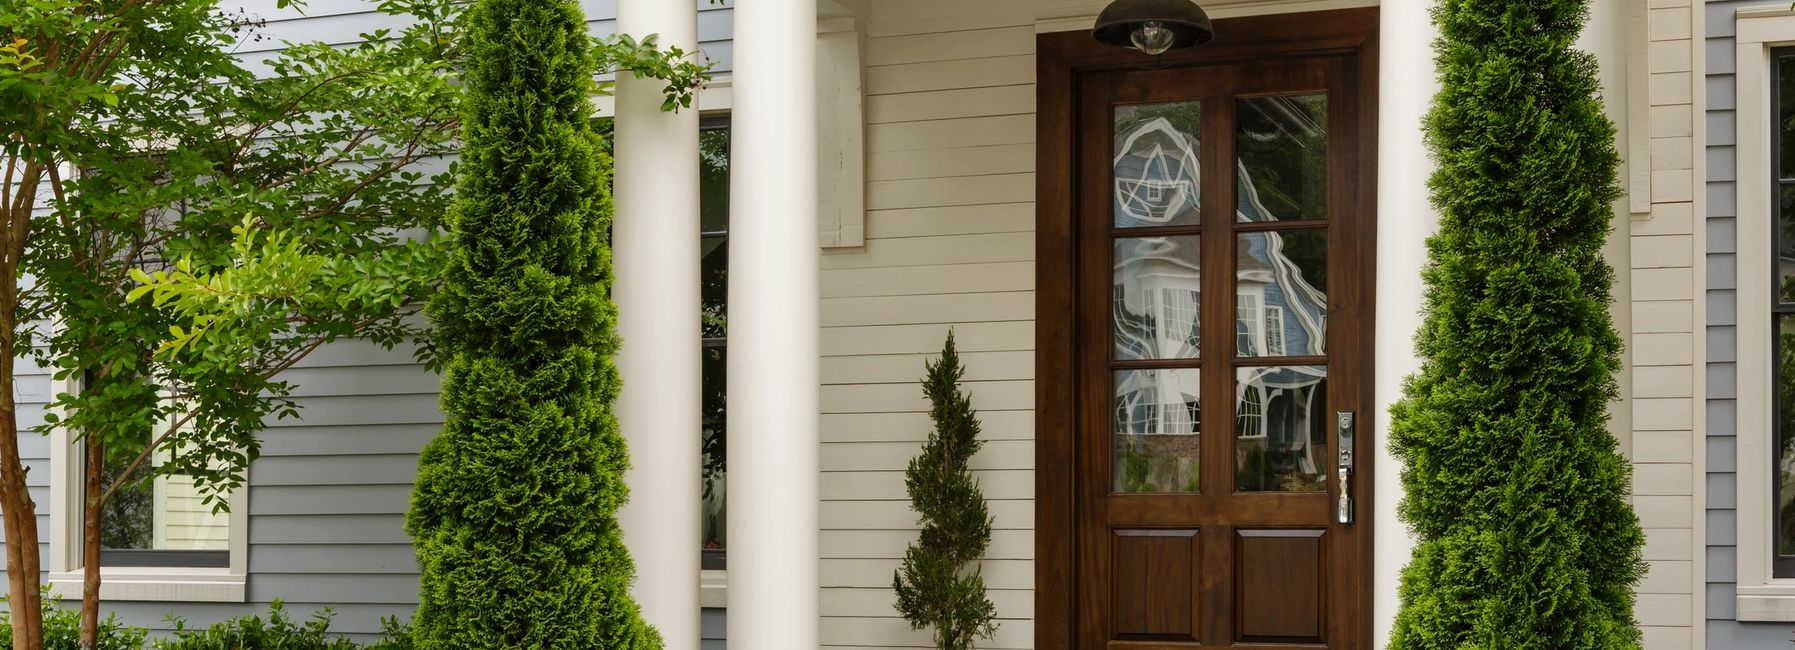 Replace Doors Door Replacement Jacksonville Northeast Fl Galaxy Builders Inc Alside French Doors